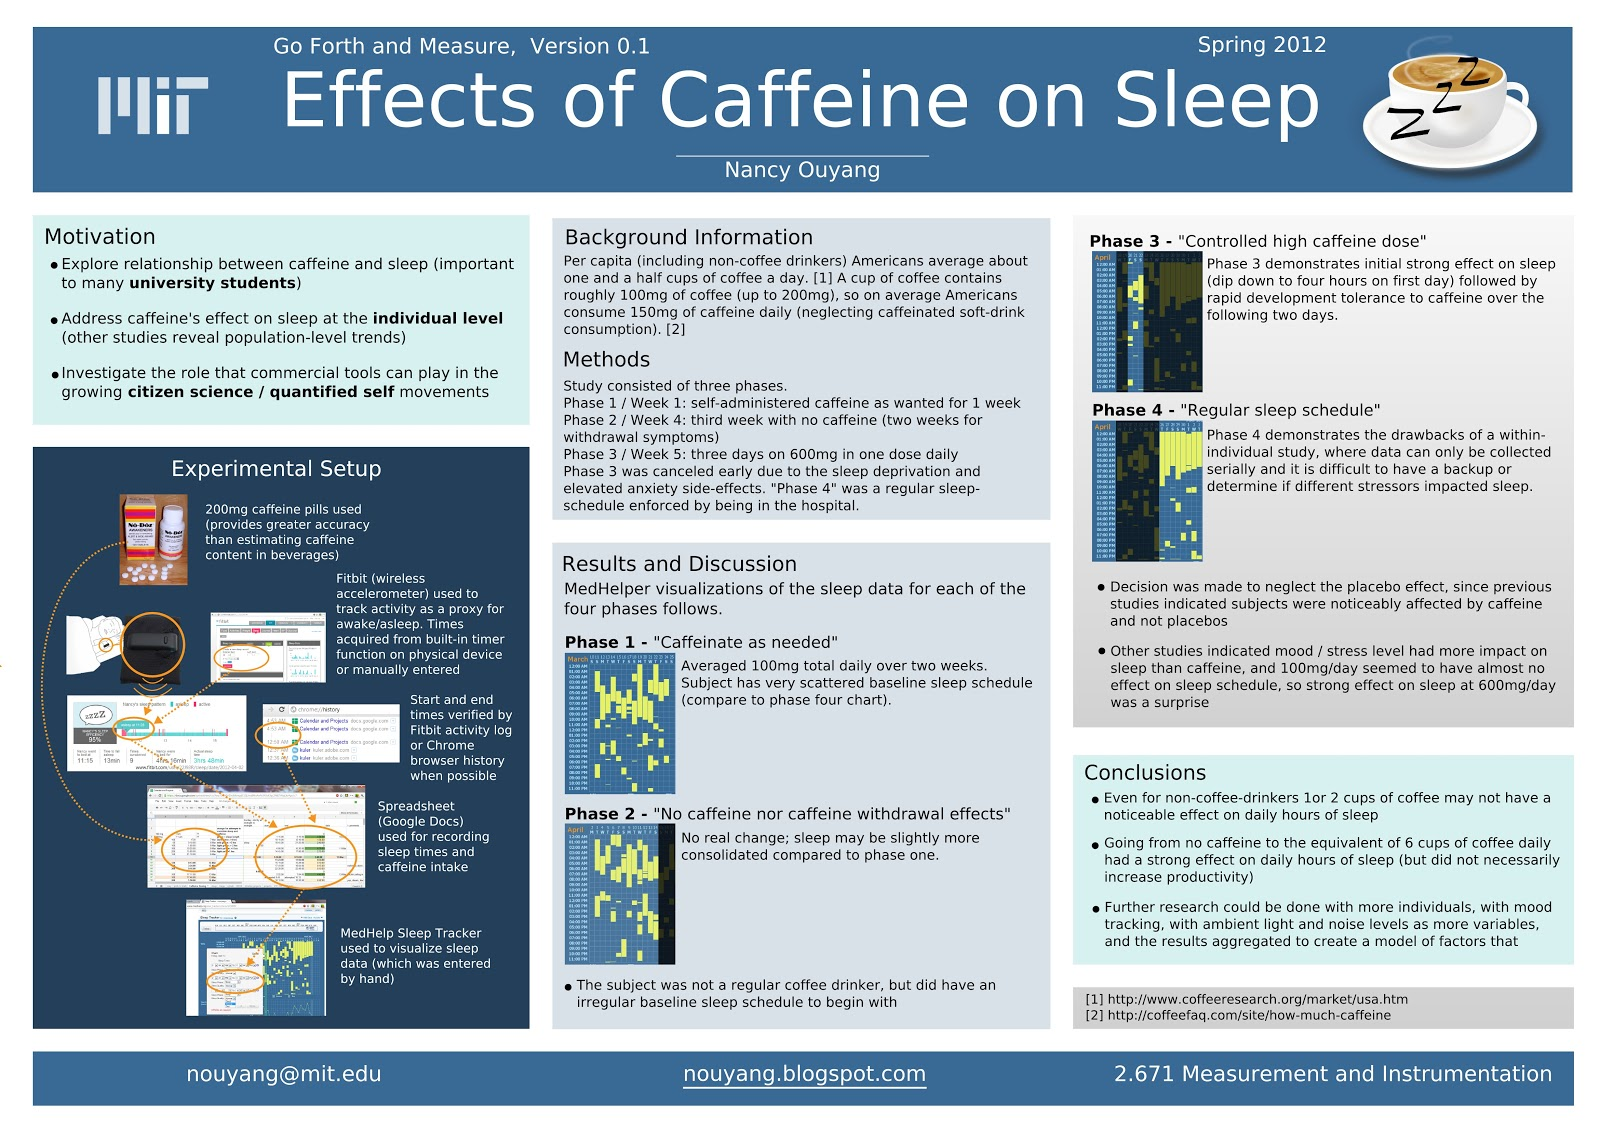 Caffeine S Impact On Sleep Inkscape A0 Scientific Poster Draft